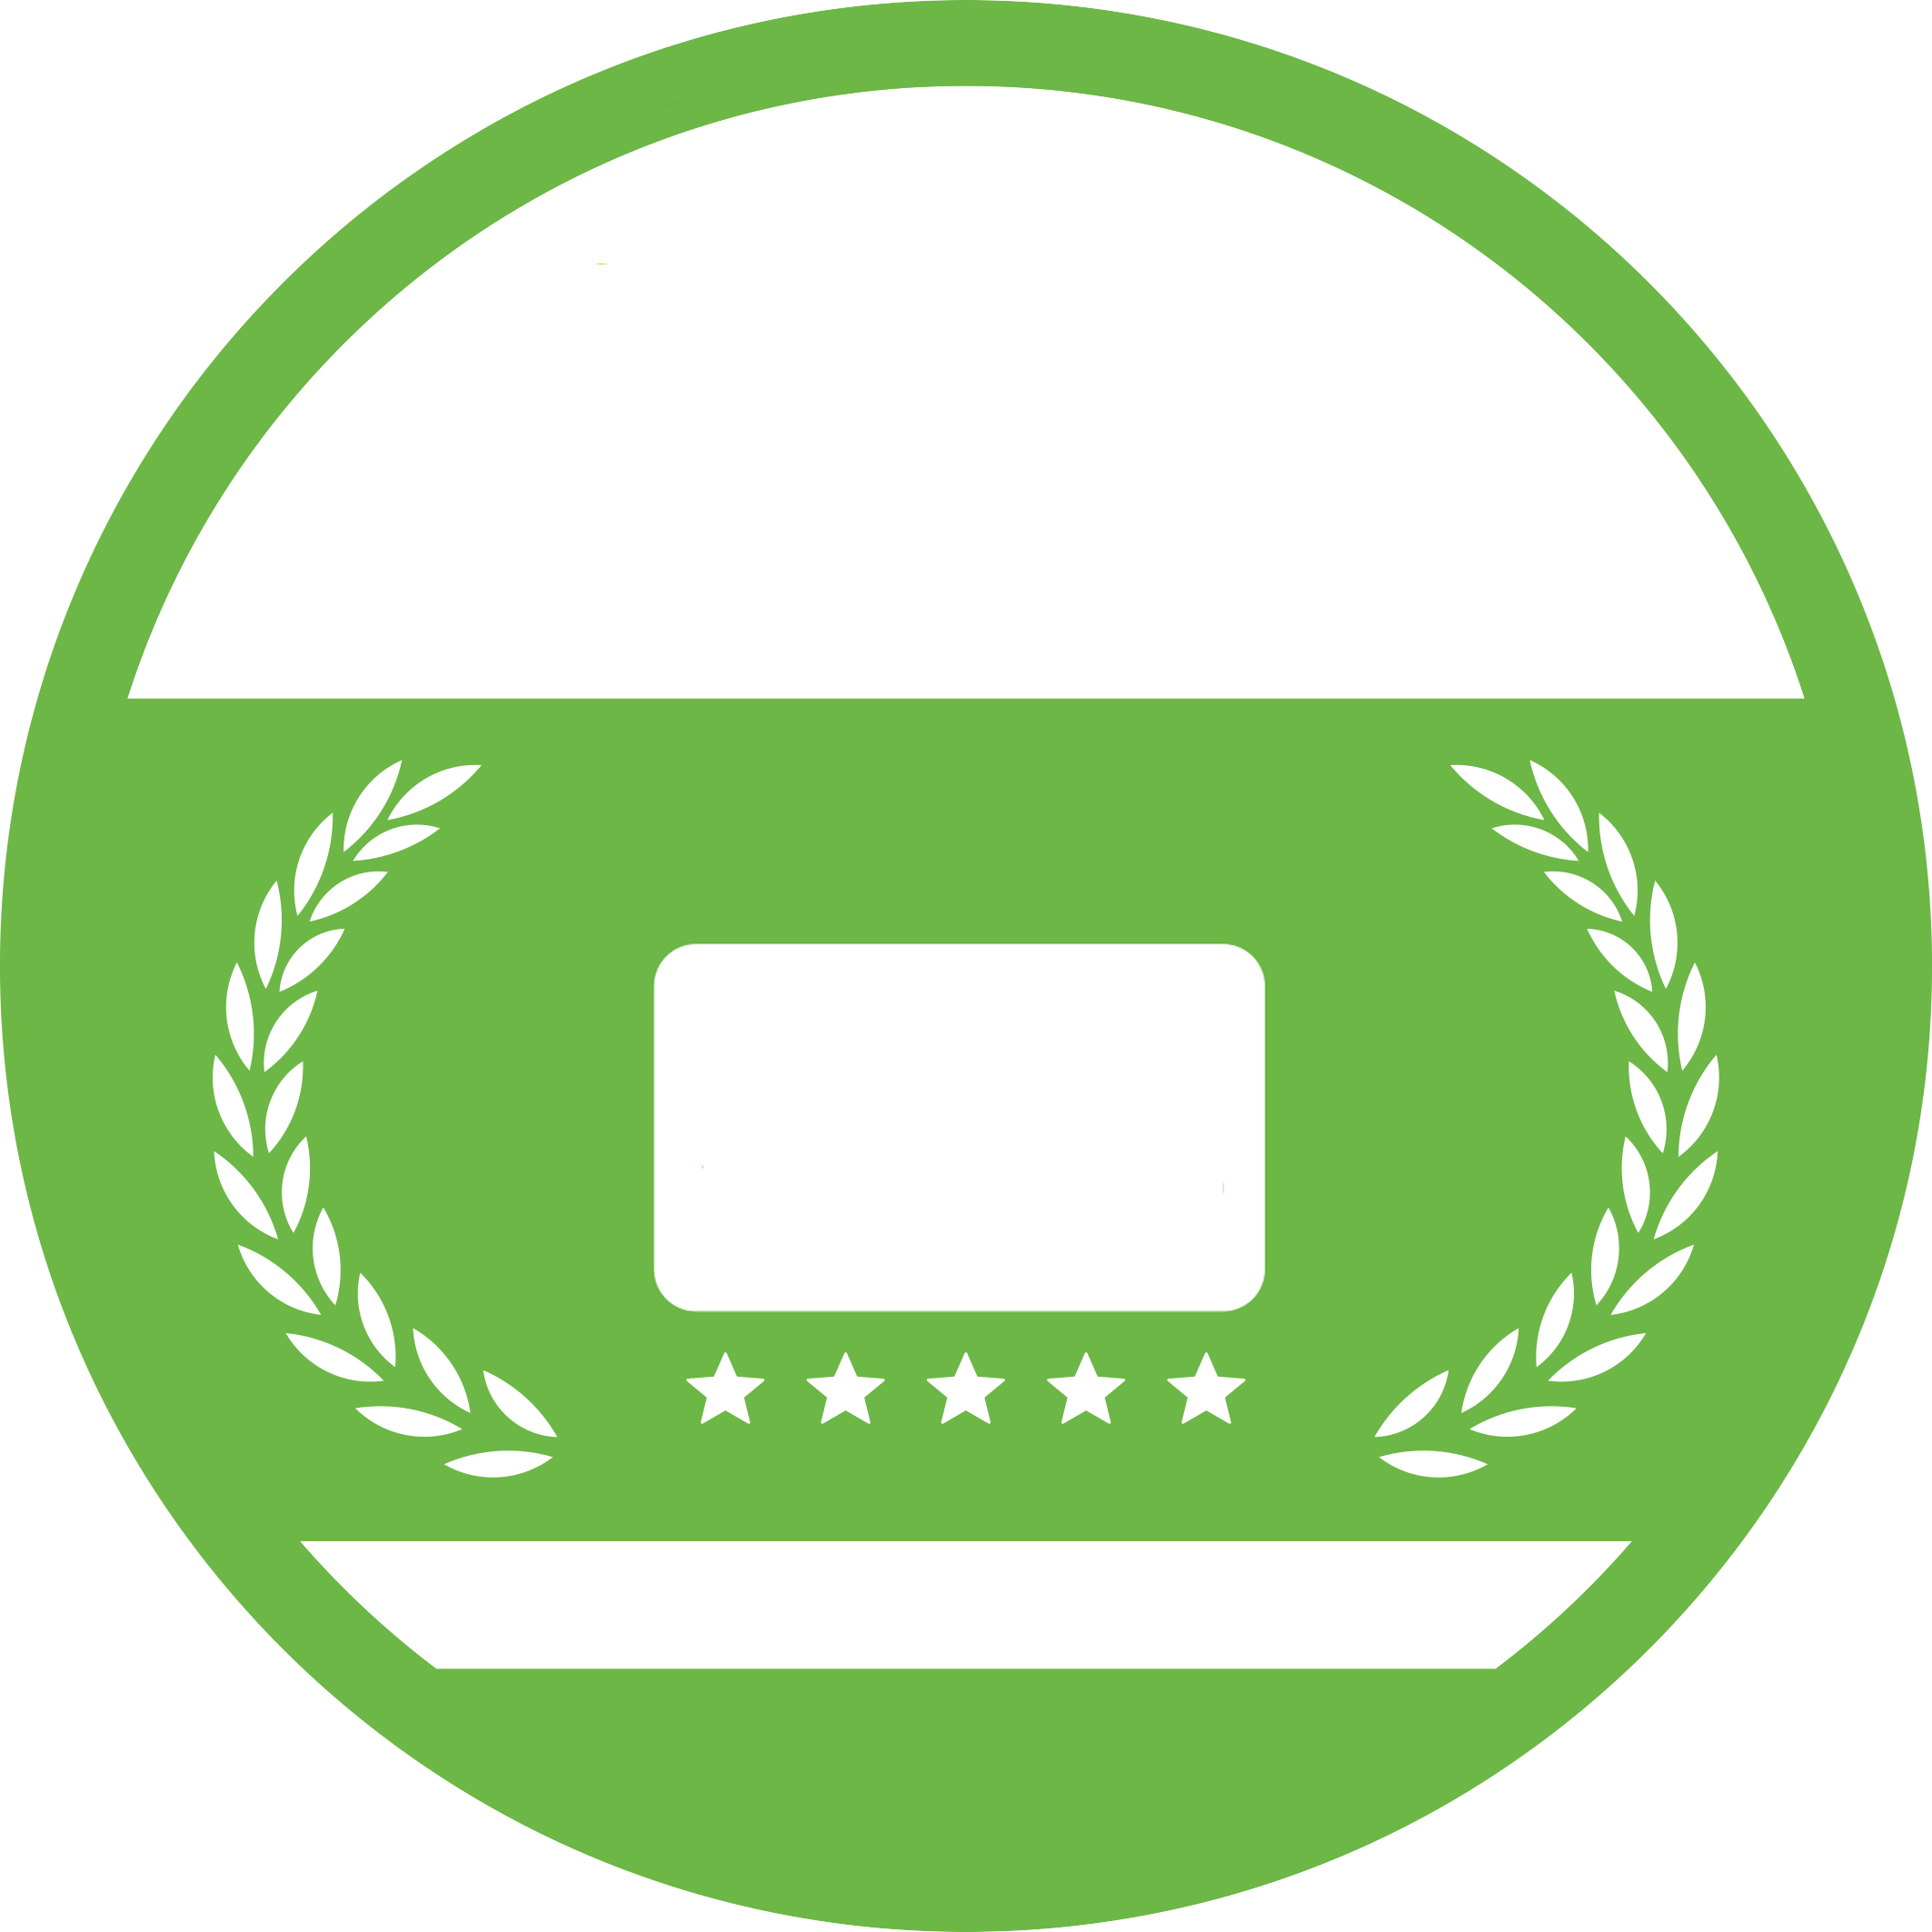 reviews badge - Referanslar